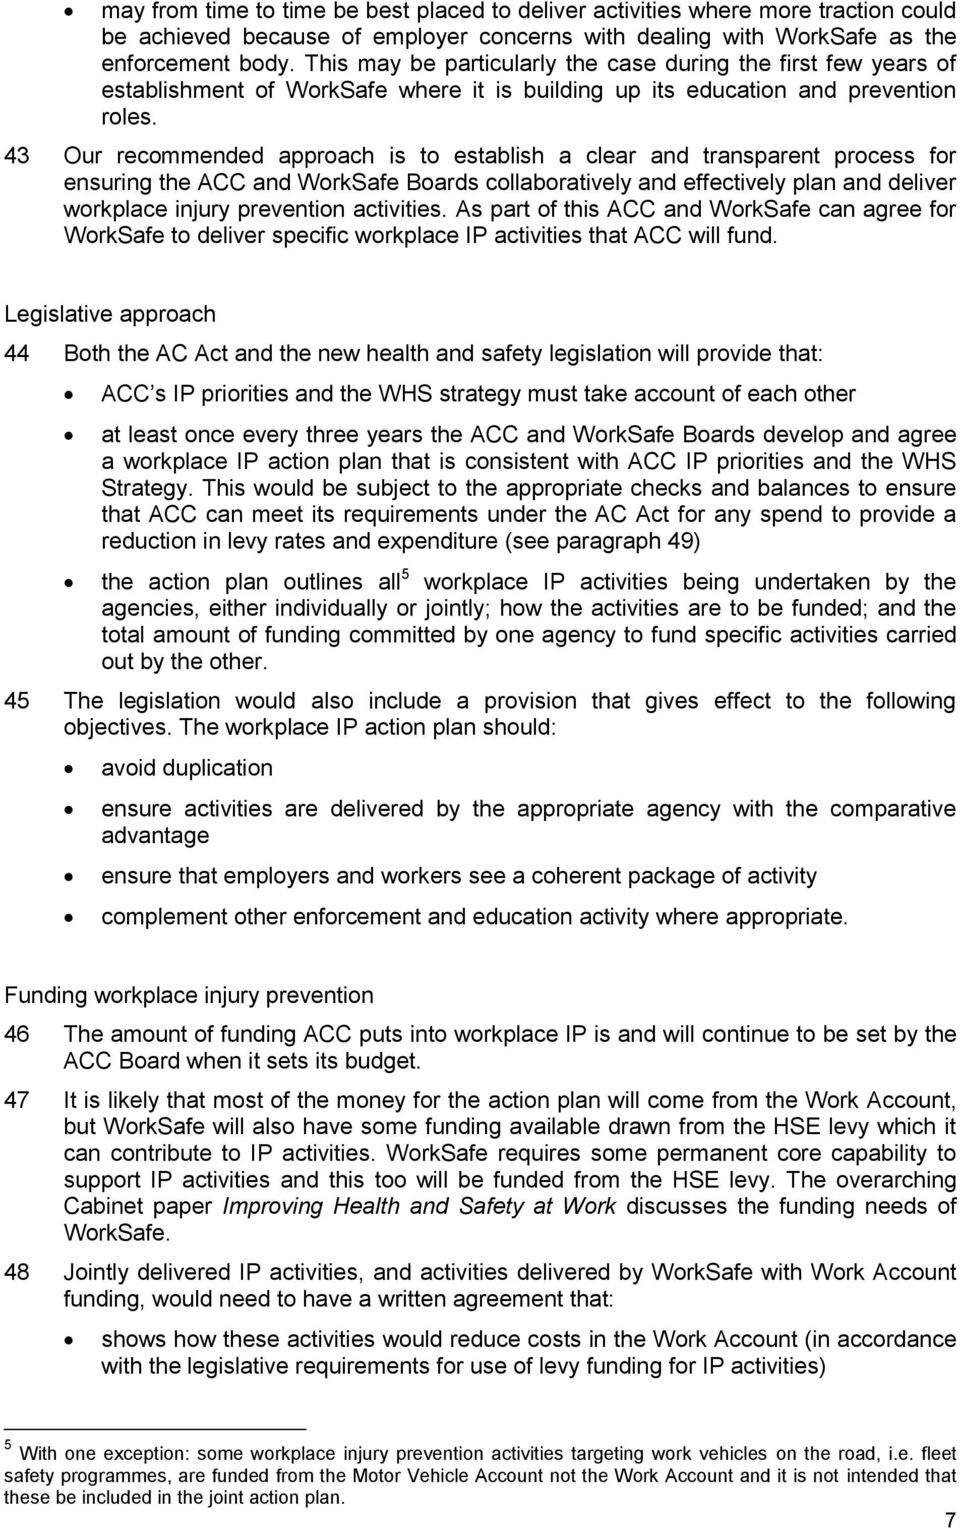 43 Our recommended approach is to establish a clear and transparent process for ensuring the ACC and WorkSafe Boards collaboratively and effectively plan and deliver workplace injury prevention